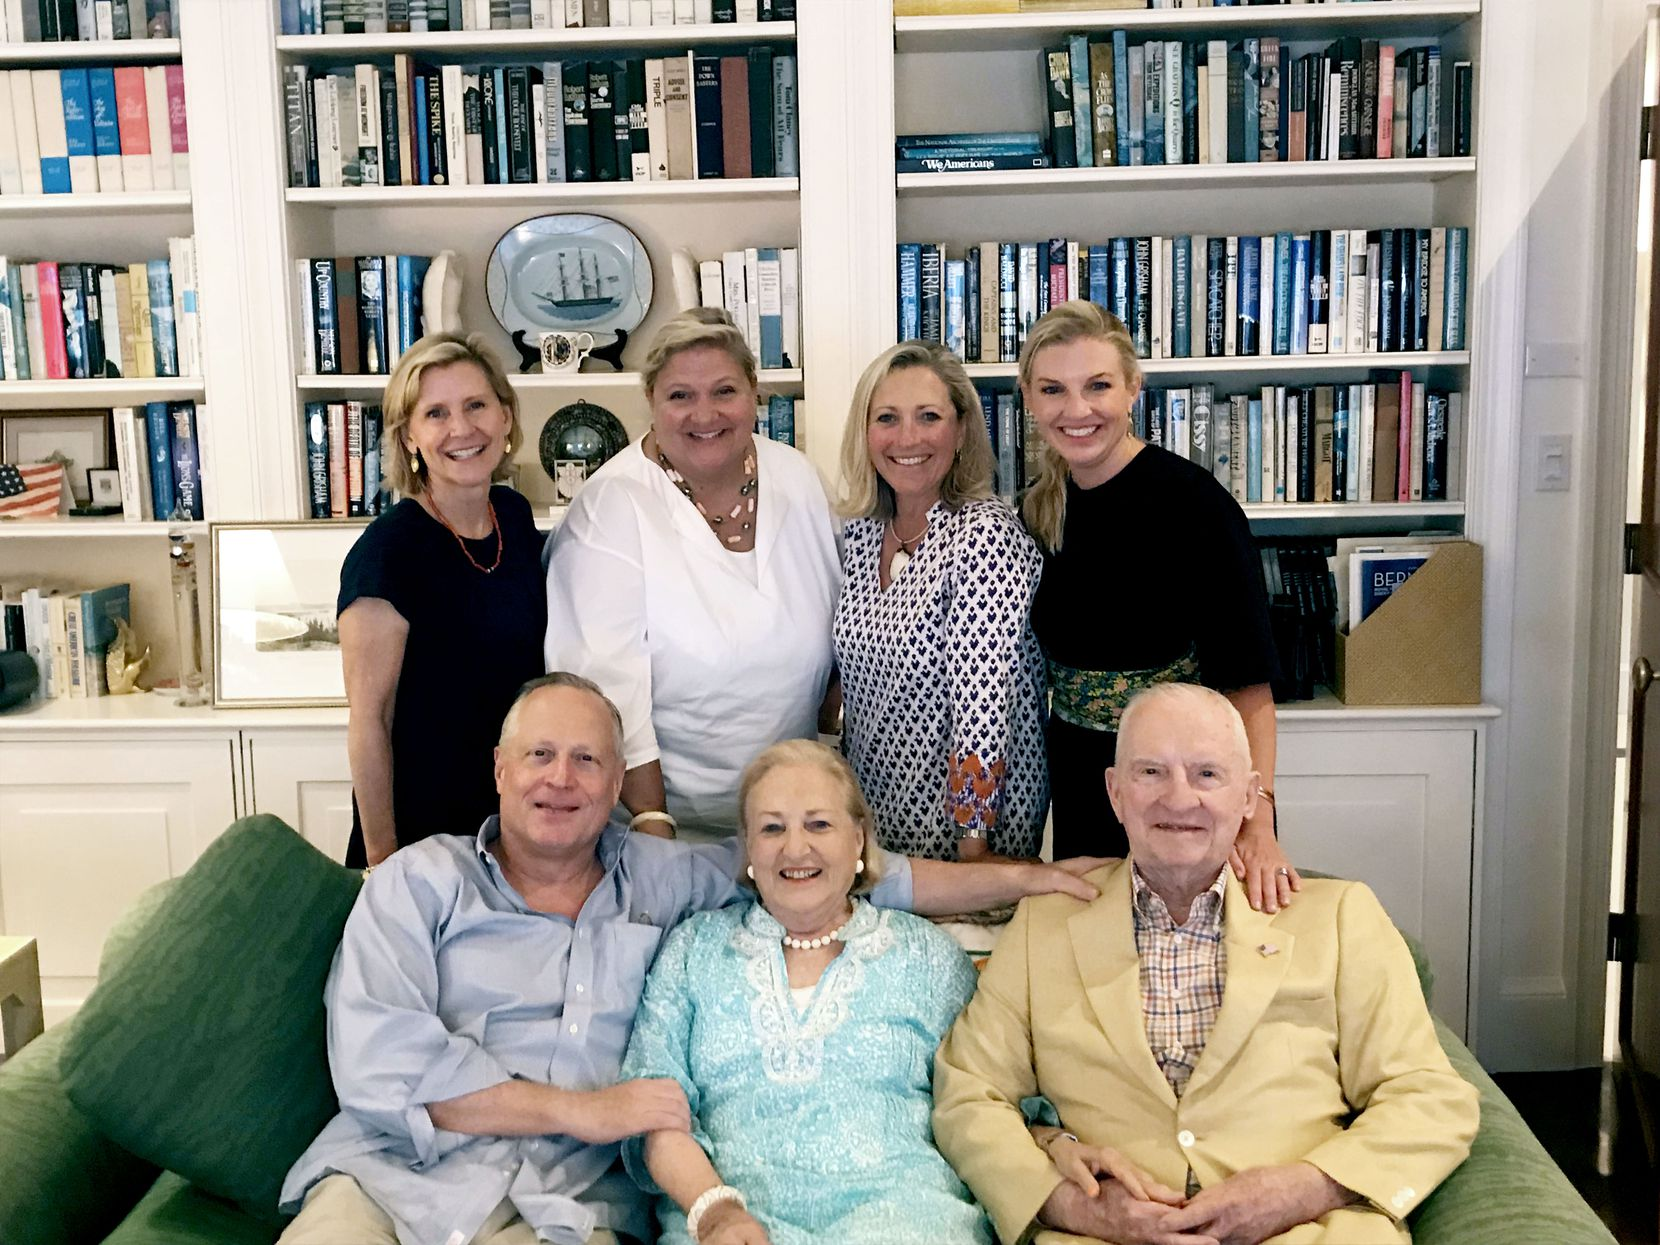 The Perot family members are shown in Bermuda during Easter 2019. Front row: (L-R) son Ross Perot Jr., Margot and Ross Perot. Back row: (L-R) daughters Nancy Perot, Suzanne Perot McGee, Carolyn Perot Rathjen and Katherine Perot Reeves.